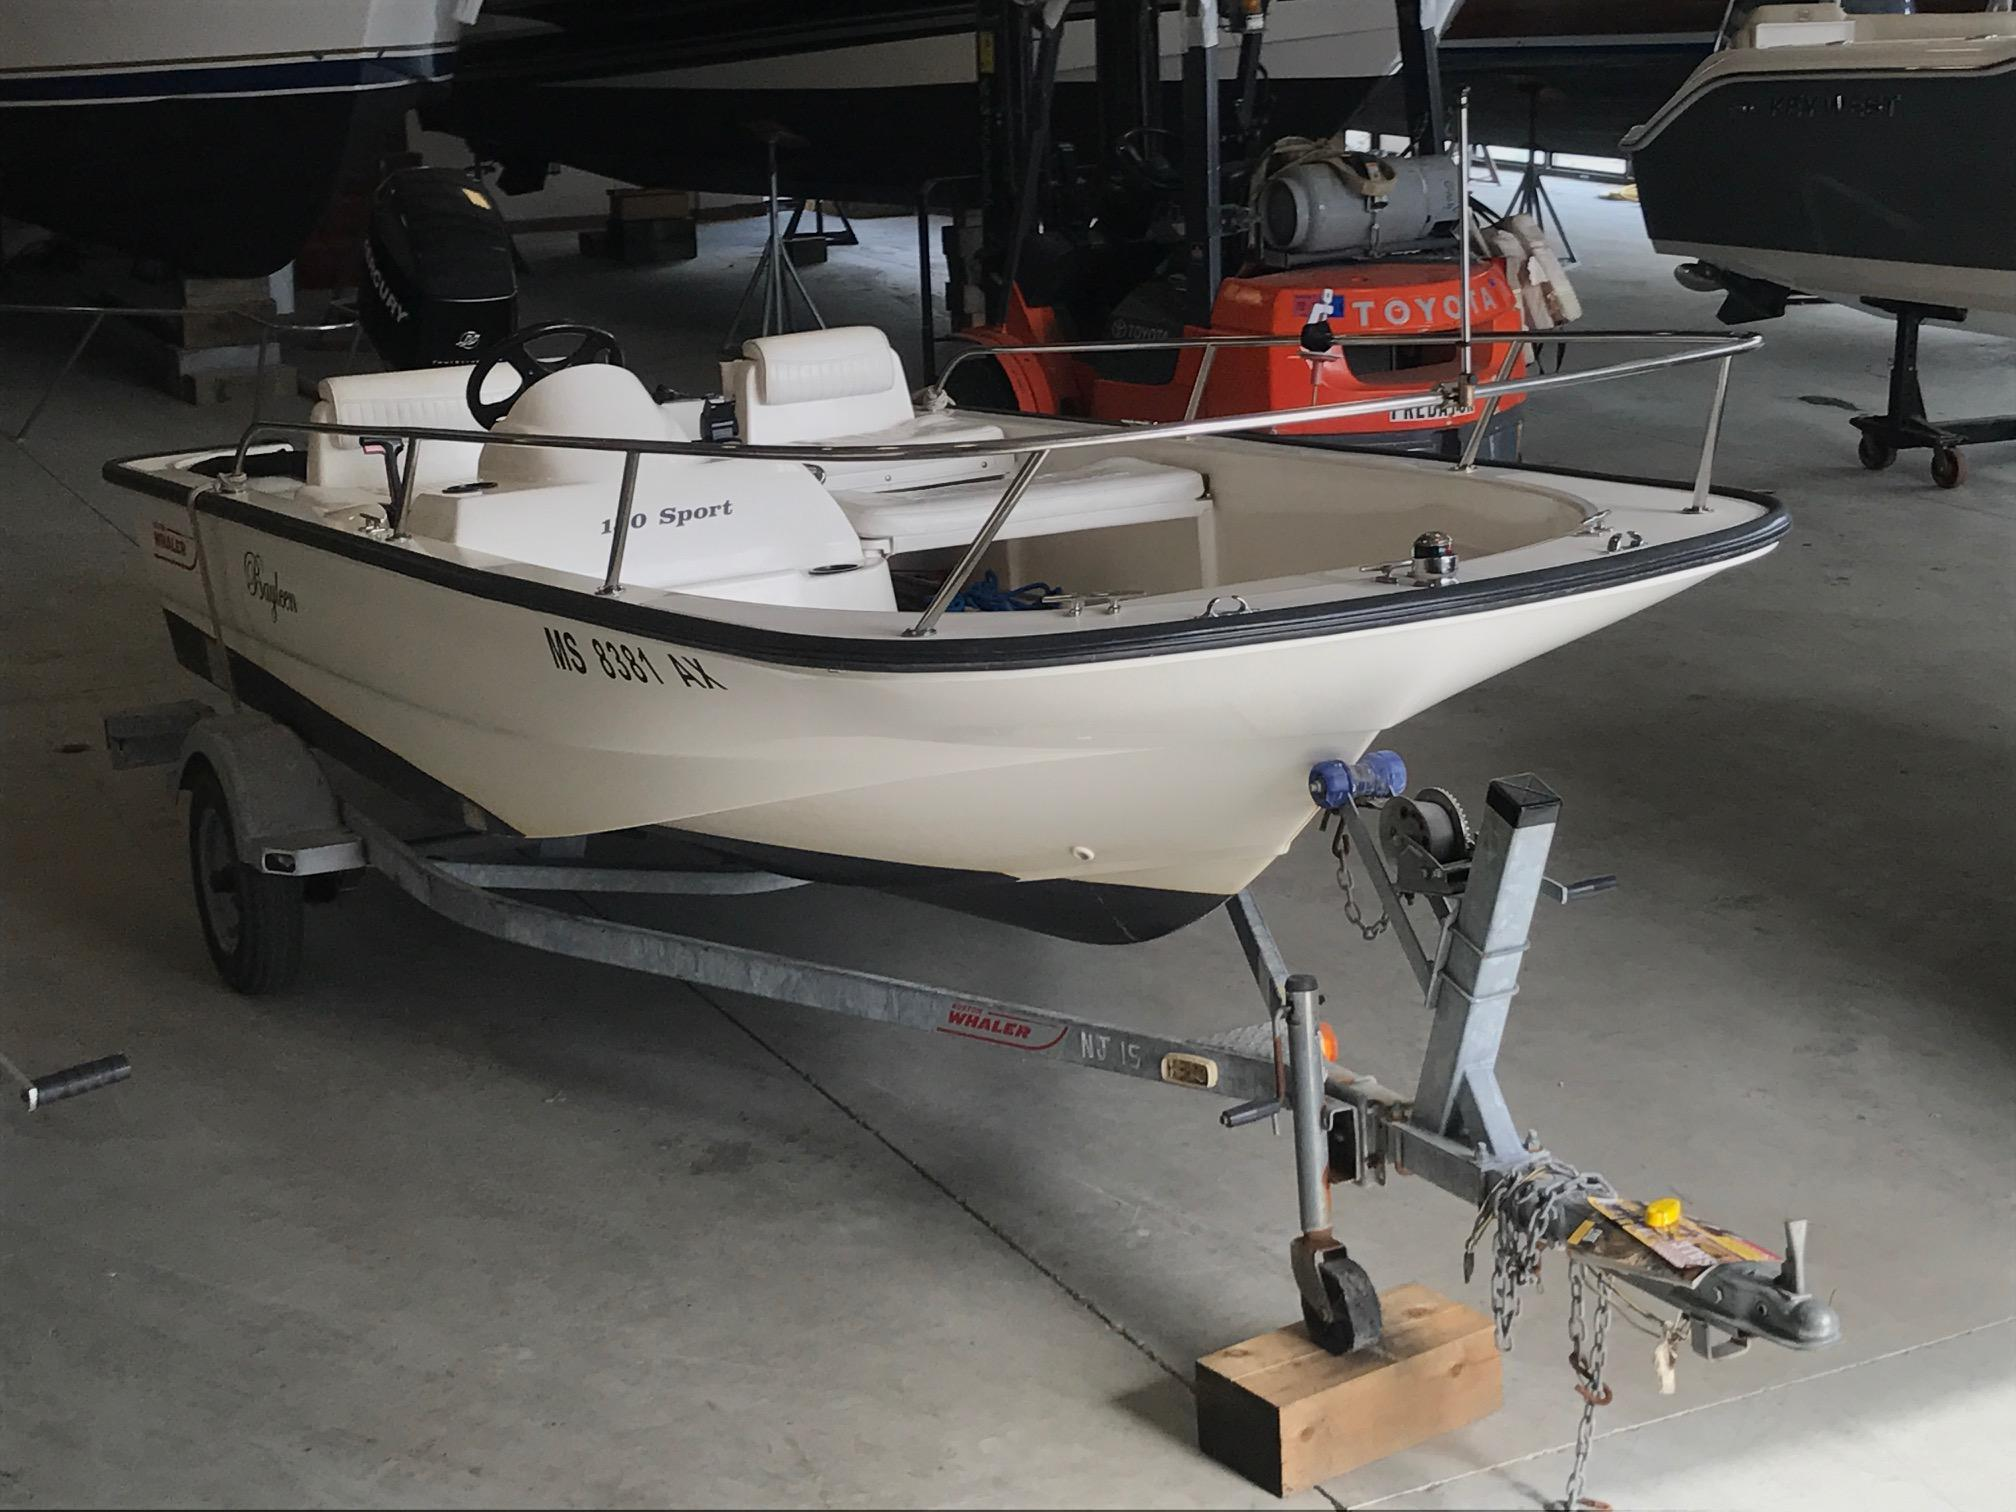 Boats For Sale In Ct >> Boston Whaler 150 Sport boats for sale - YachtWorld